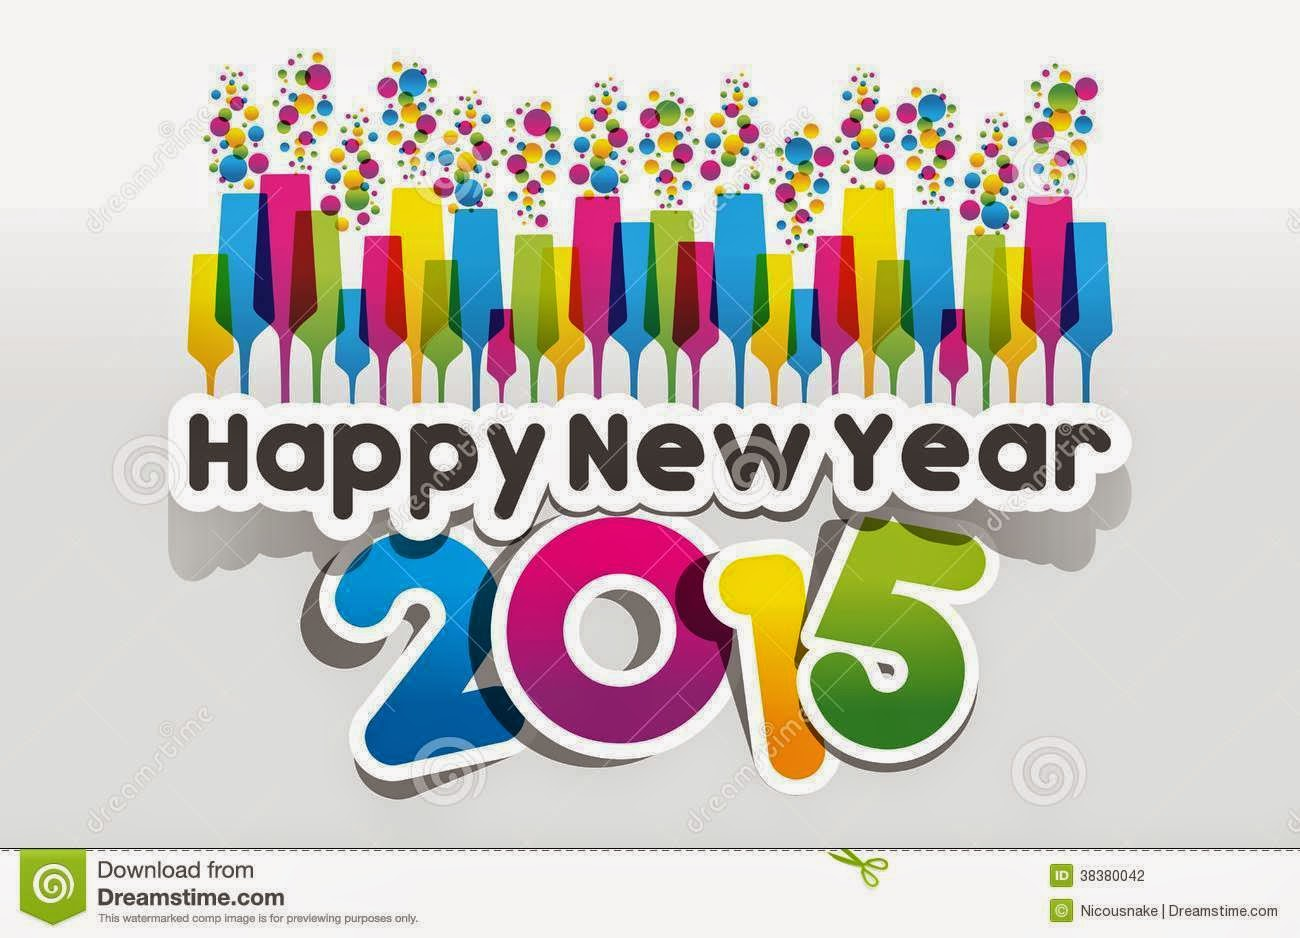 Download new year wishes clipart happy new year best wishes images happy new year wishes pictures happy new year 2015 happy new year 2015 greeting card 38380042 happy new year wishes pictureshtml download new year wishes kristyandbryce Gallery